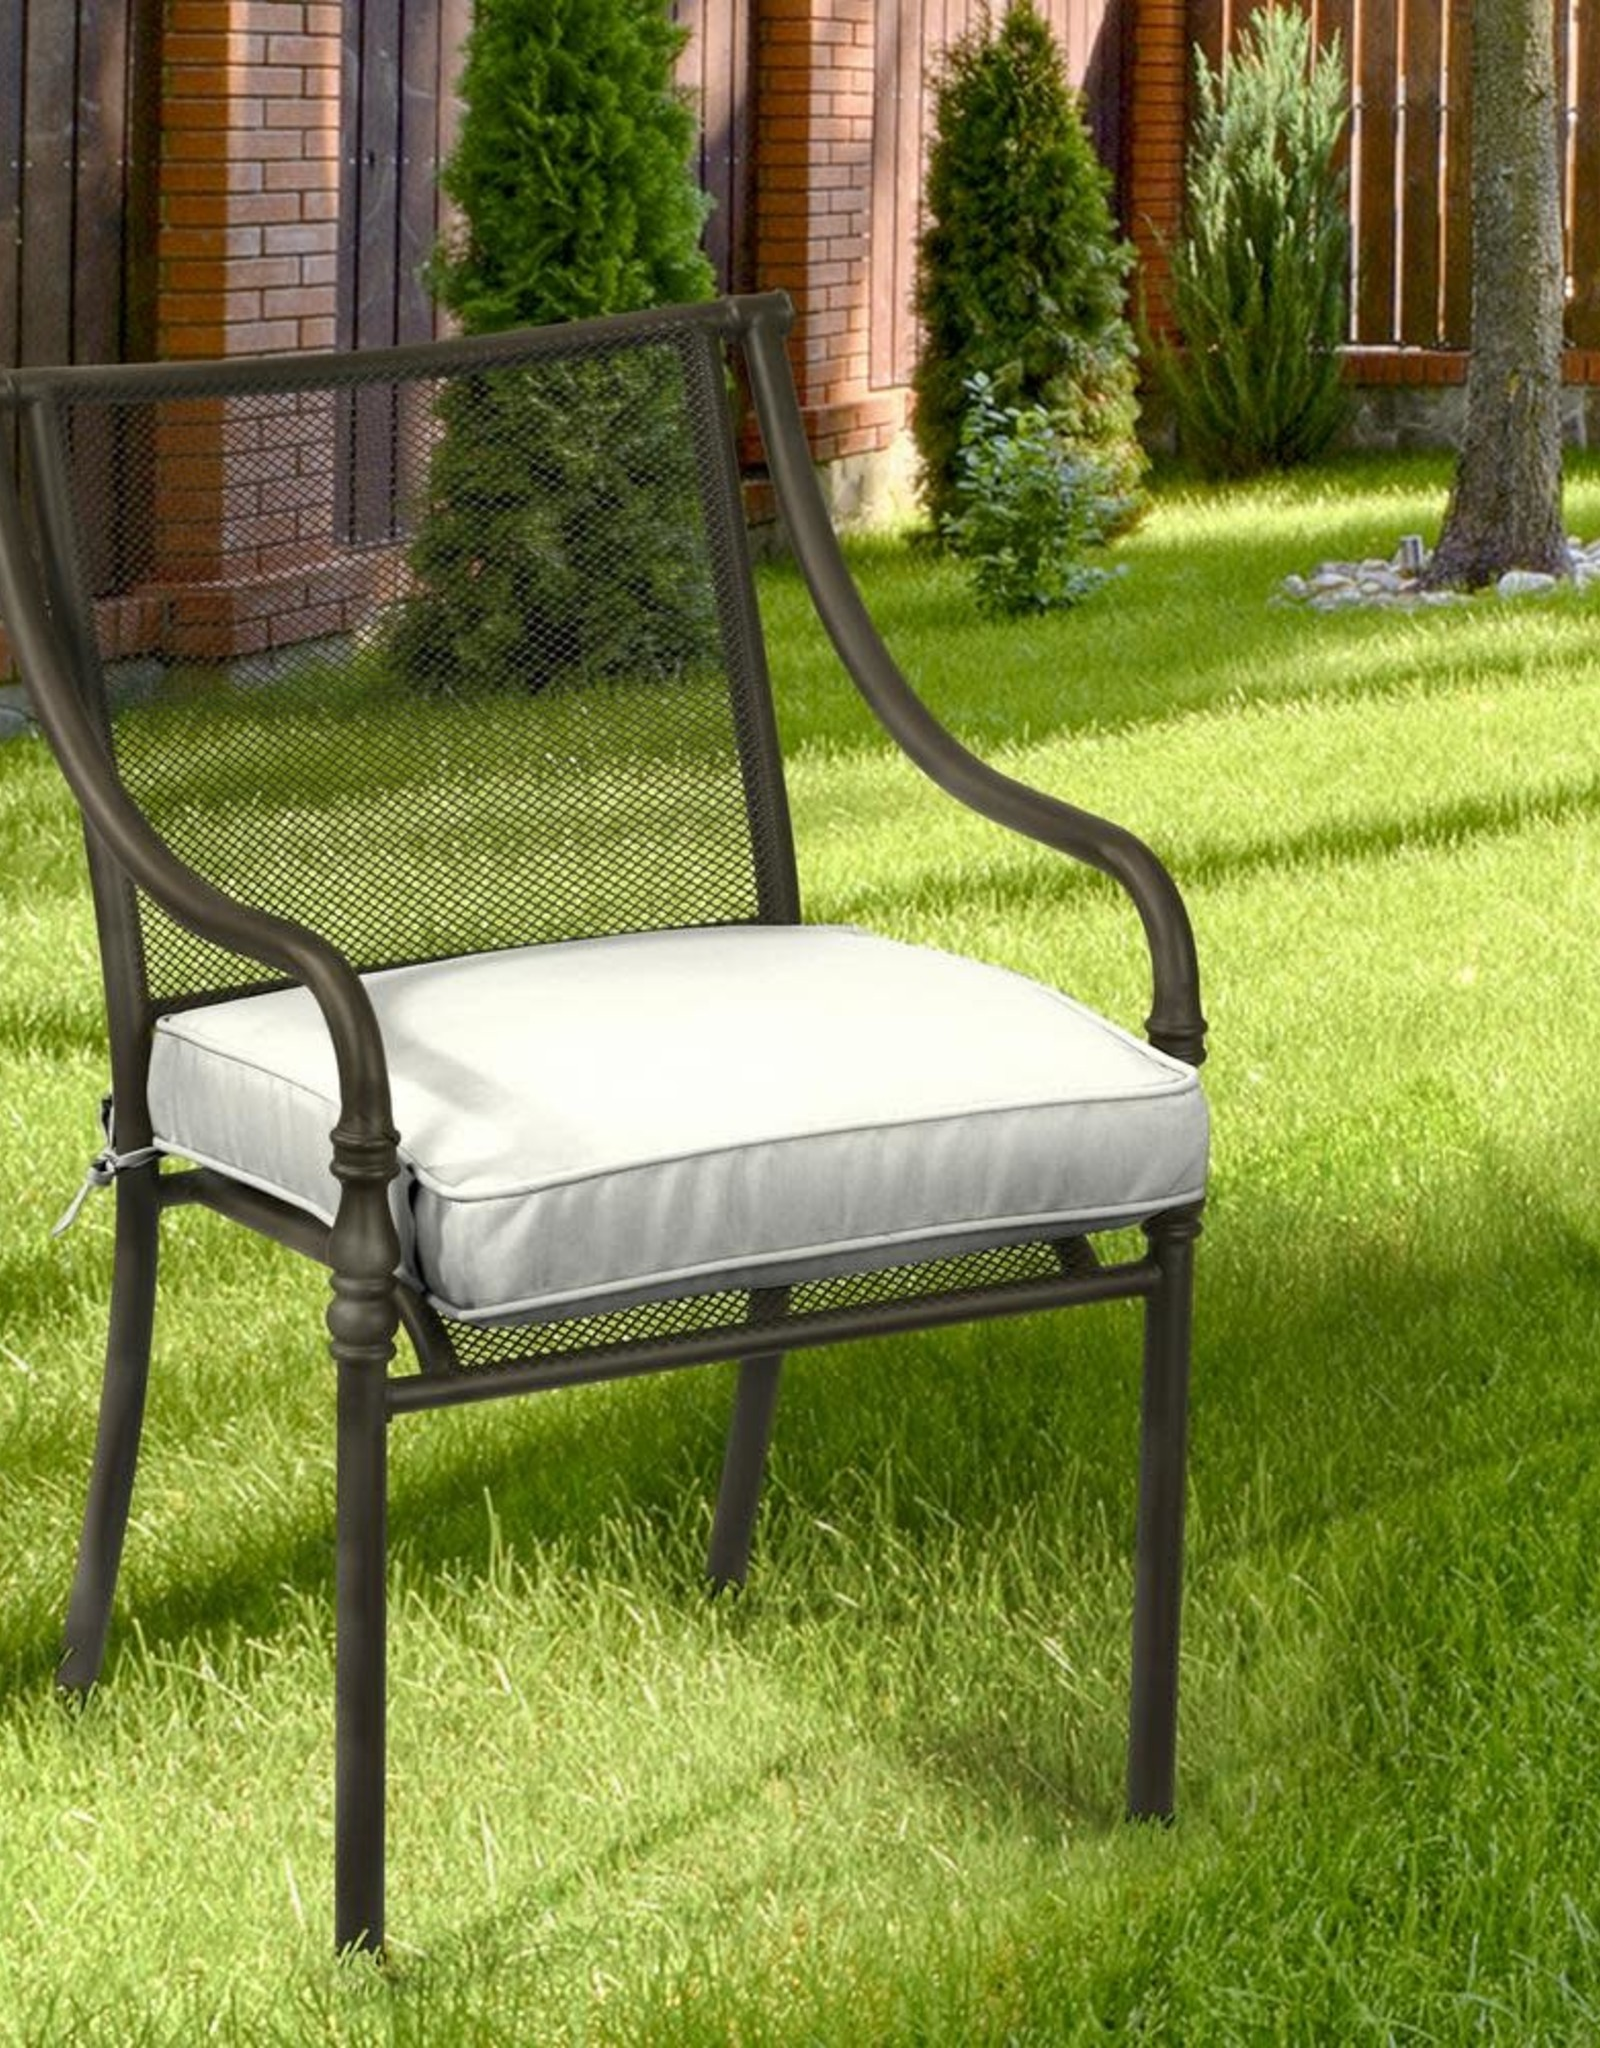 Home Decorators Collection 20 x 20 Sunbrella Canvas White Outdoor Chair Cushion (2-Pack)